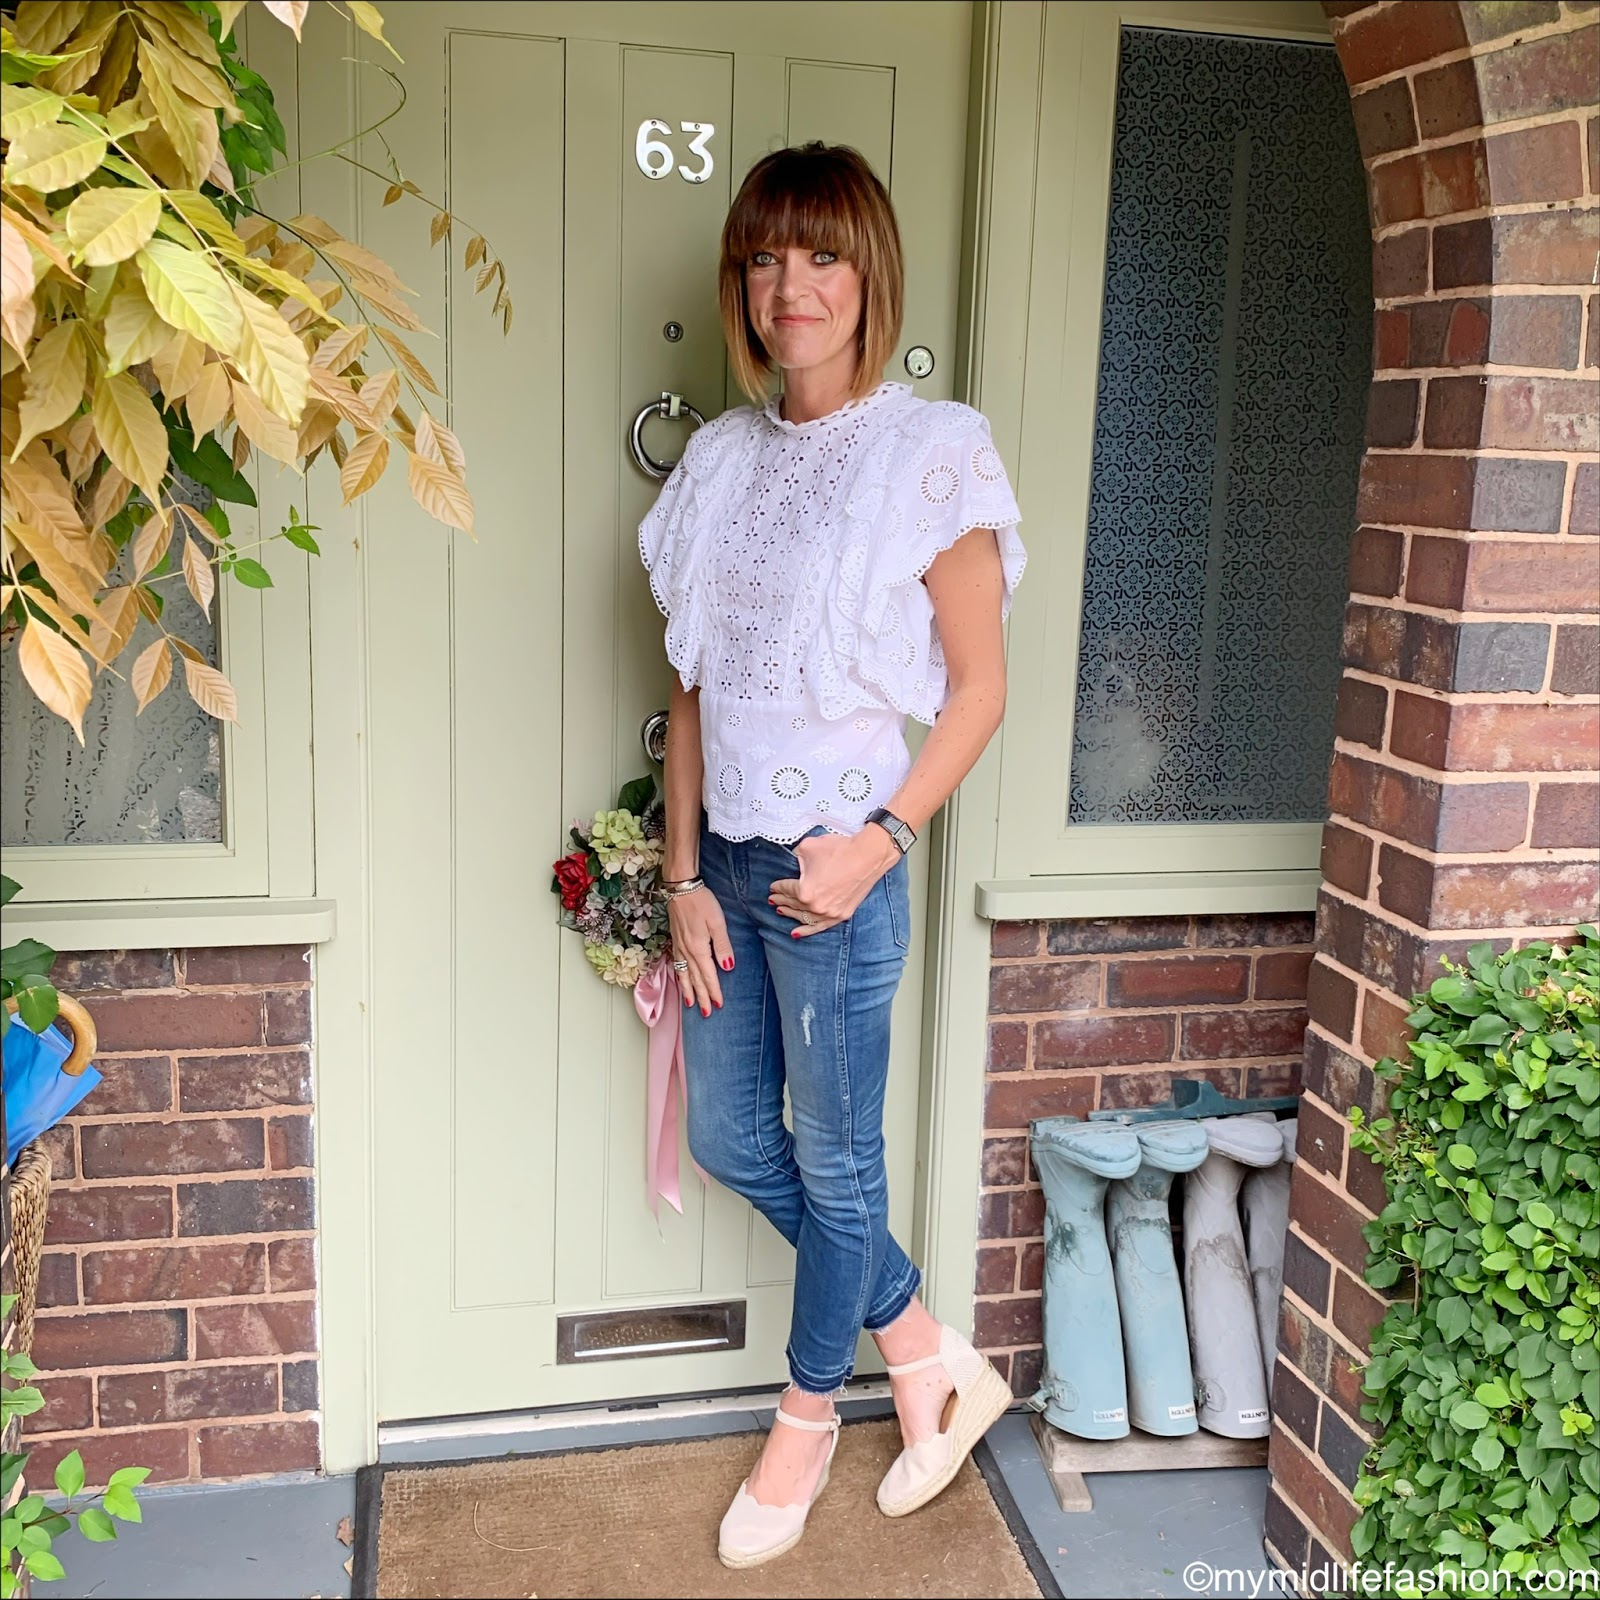 my midlife fashion, monsoon broderie anglaise frill blouse, j crew straight leg jeans, carl scrap Brittany beige metallic sandals